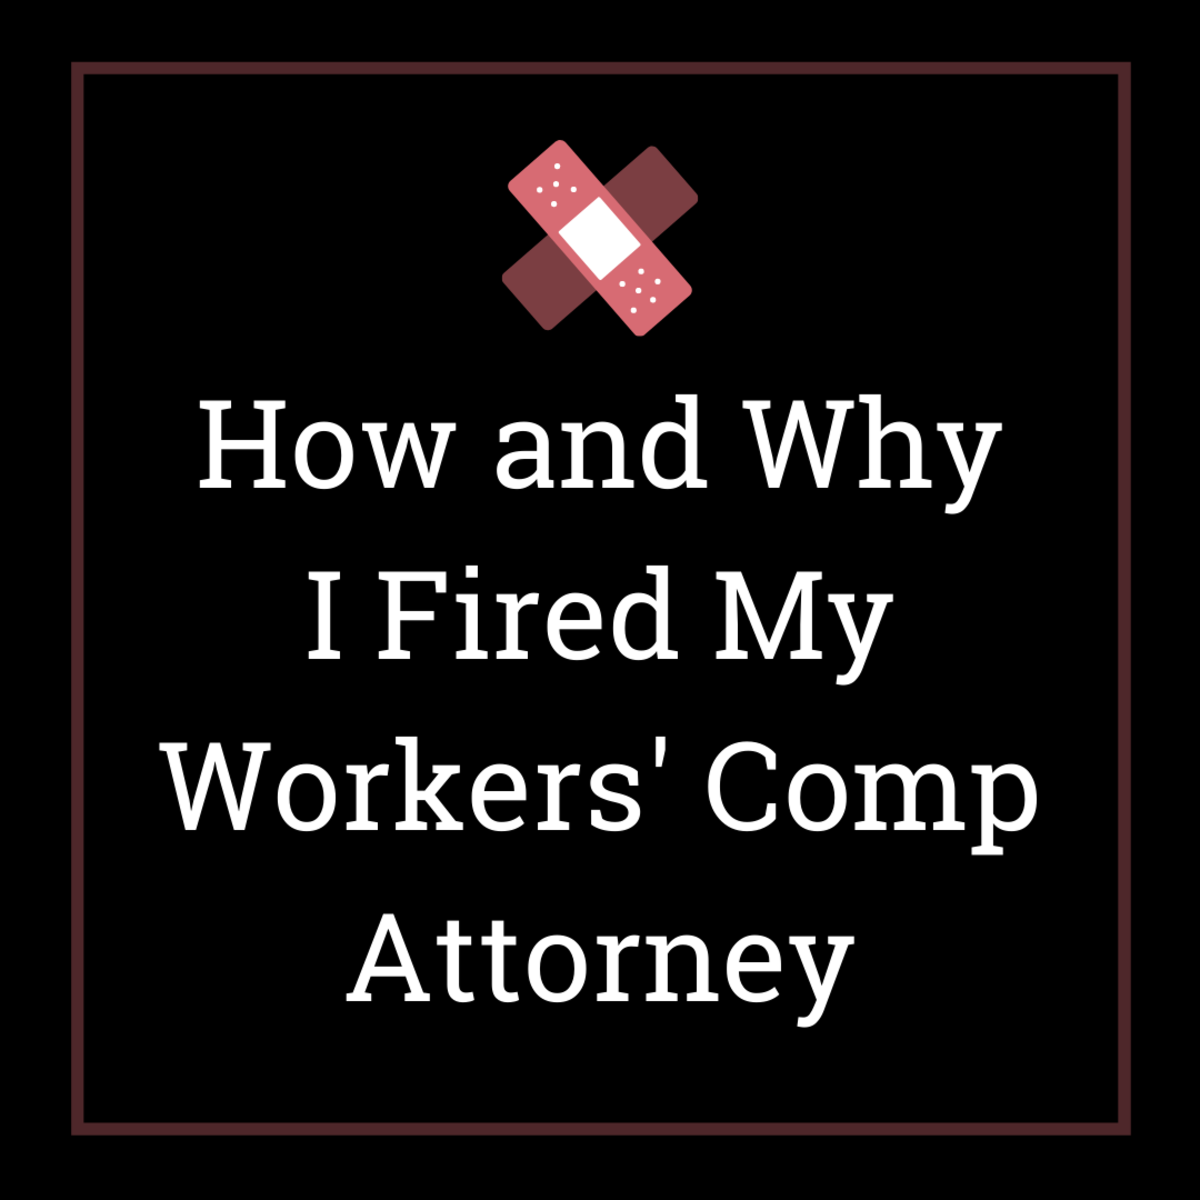 Read about my personal experience with a workers' compensation case, why I fired my lawyer, and why I wish I'd done so sooner.